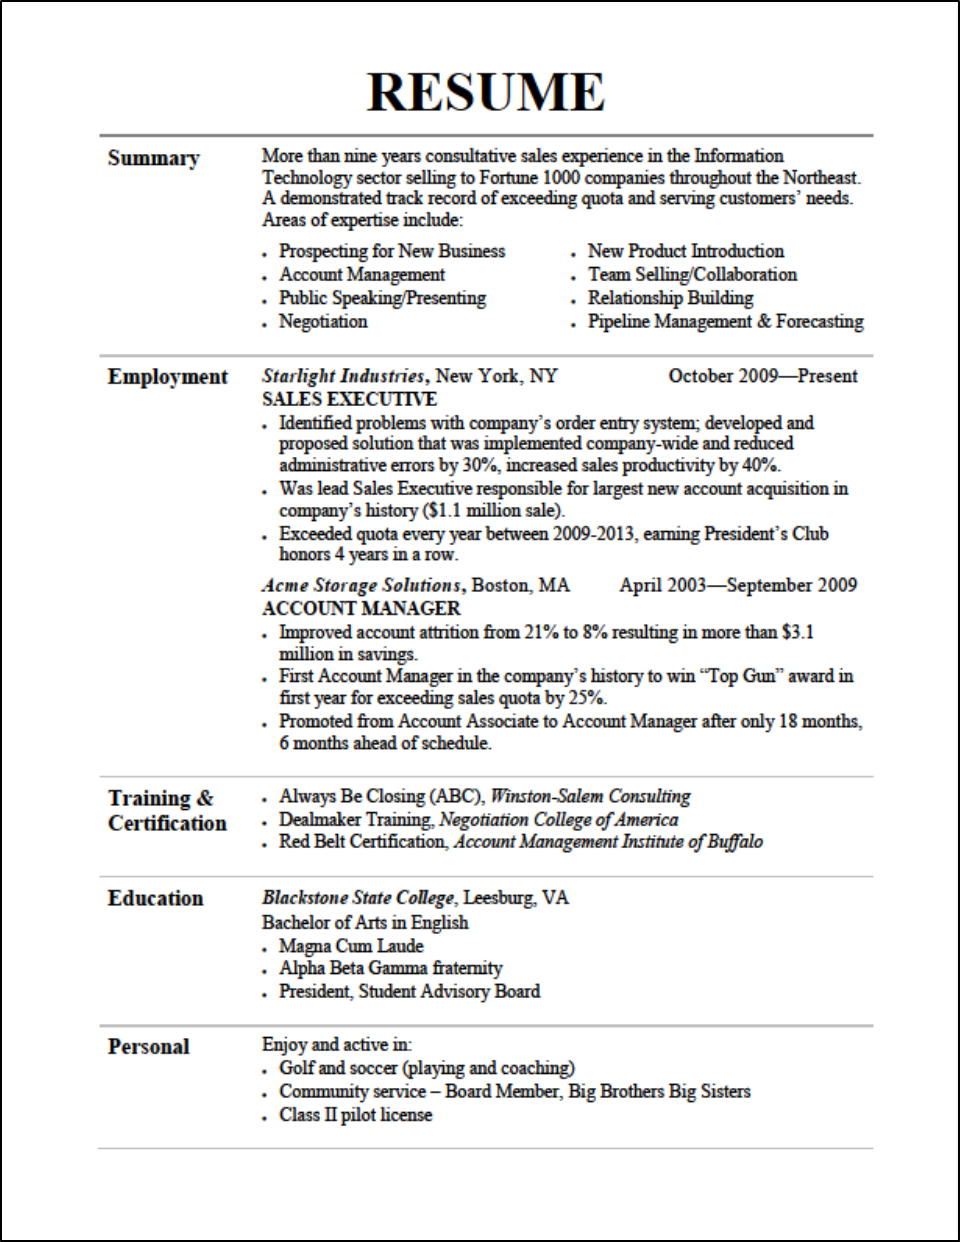 tips resume - Resume Advice